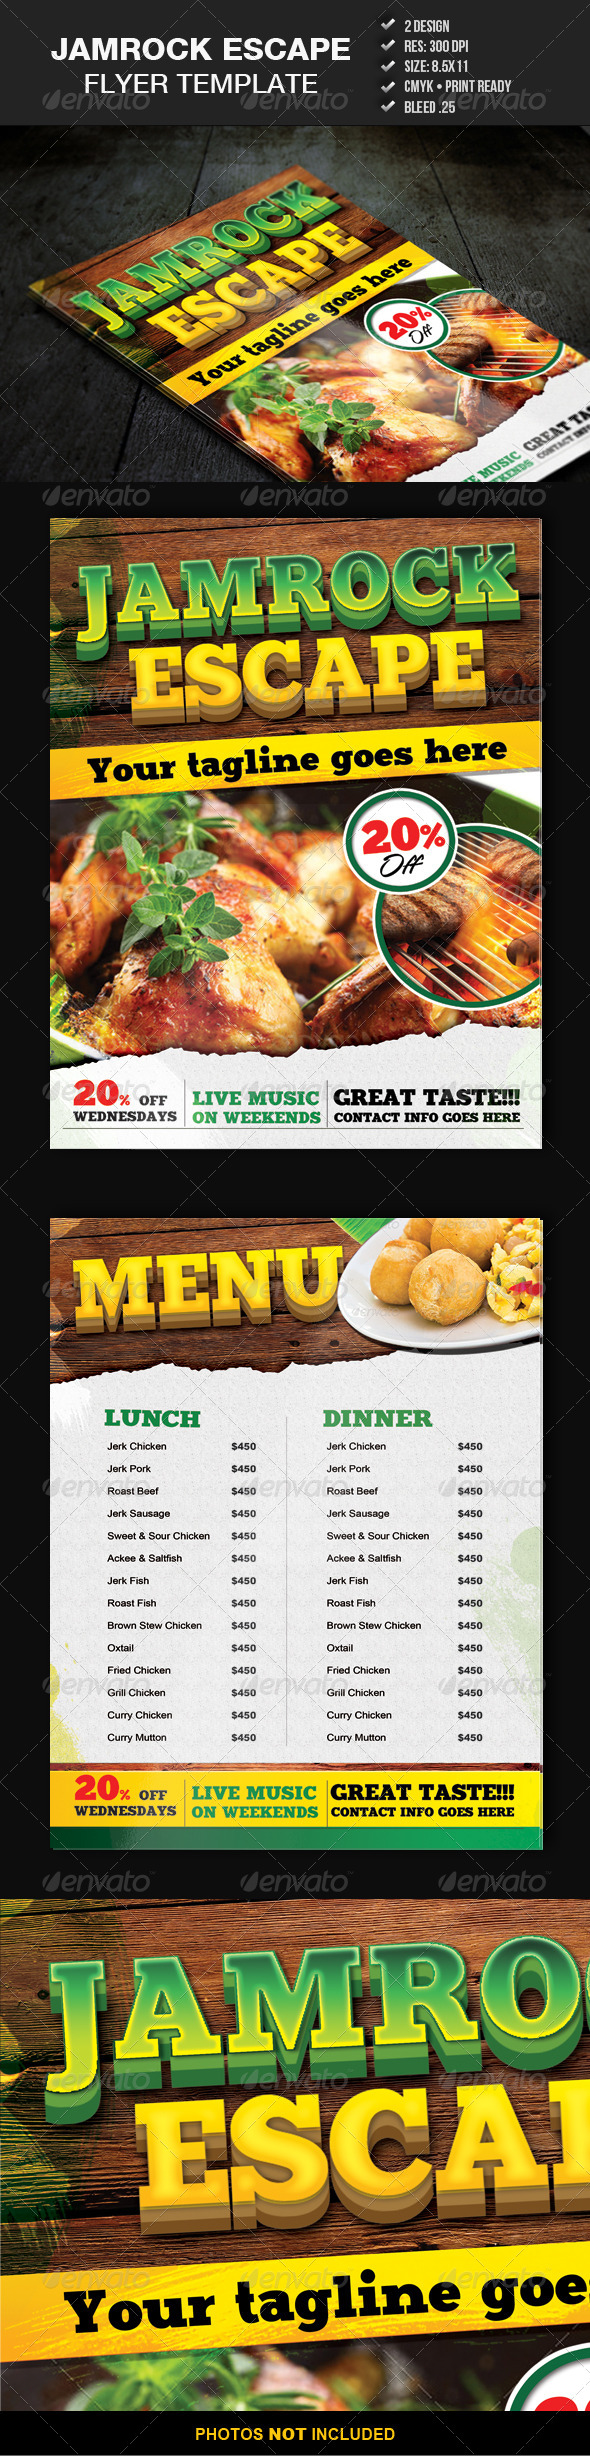 Jamrock Escape Flyer Template - Restaurant Flyers